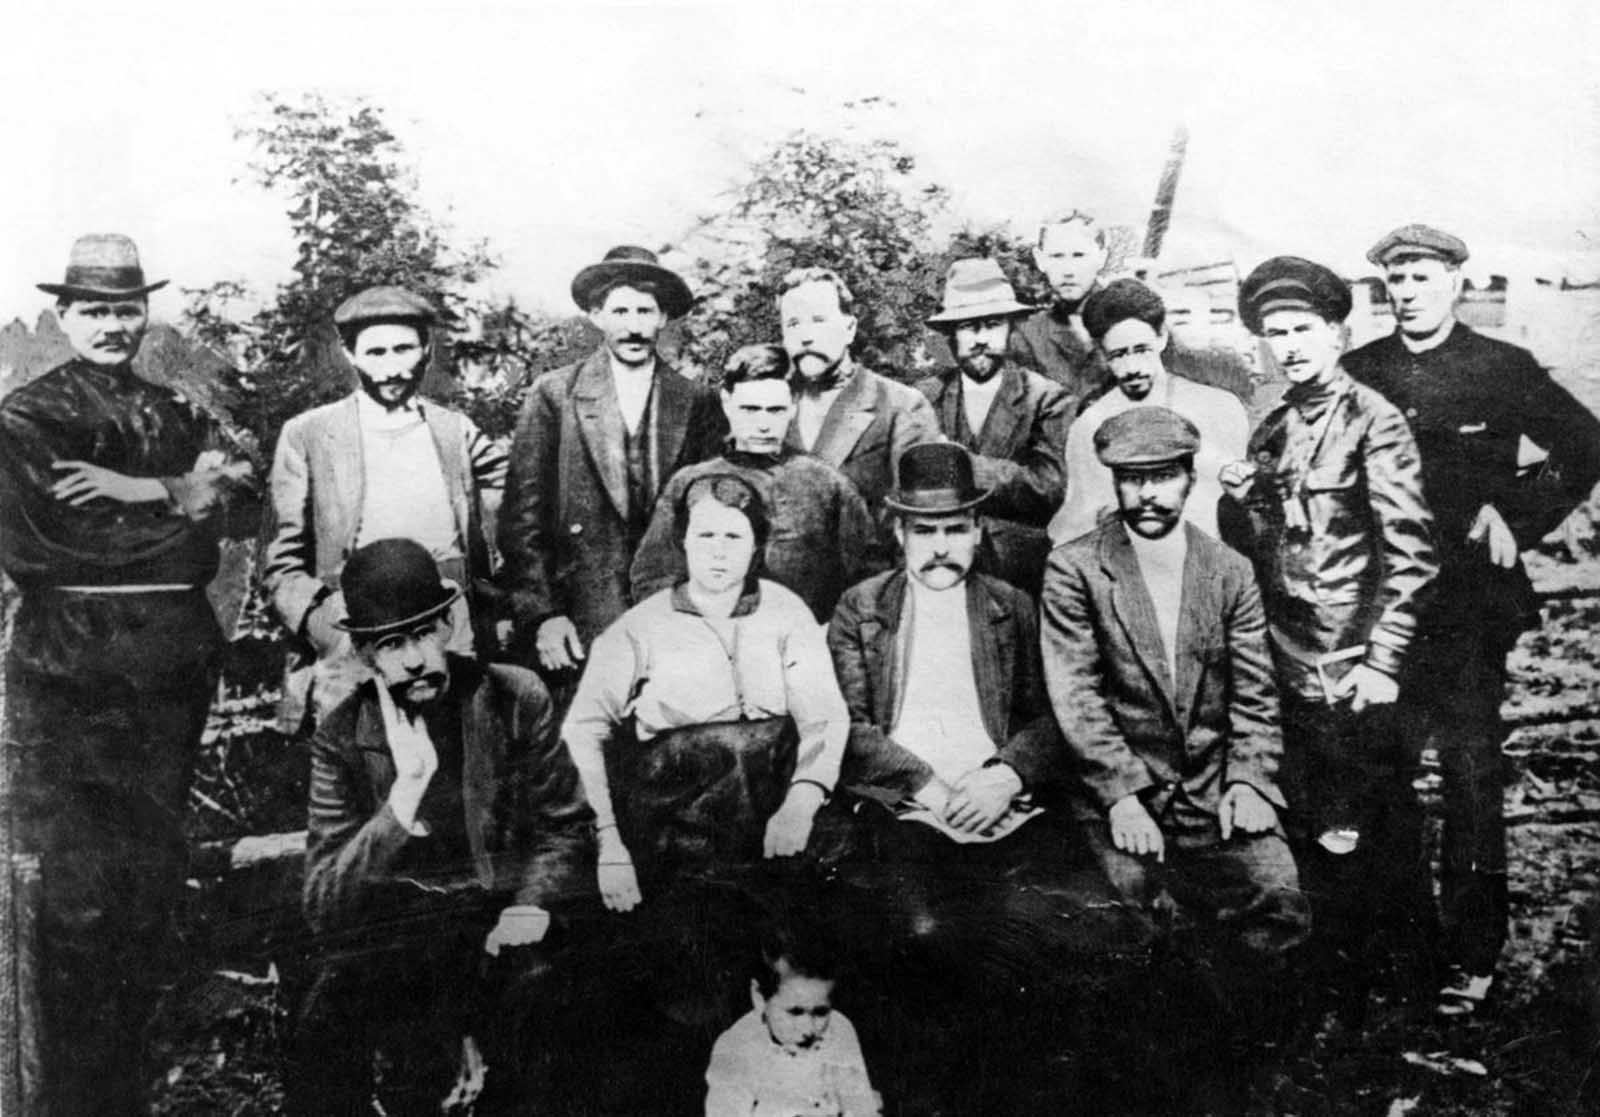 Stalin (standing, third from left) with a group of Bolshevik revolutionaries in Turukhansk, Russian Empire. 1915.